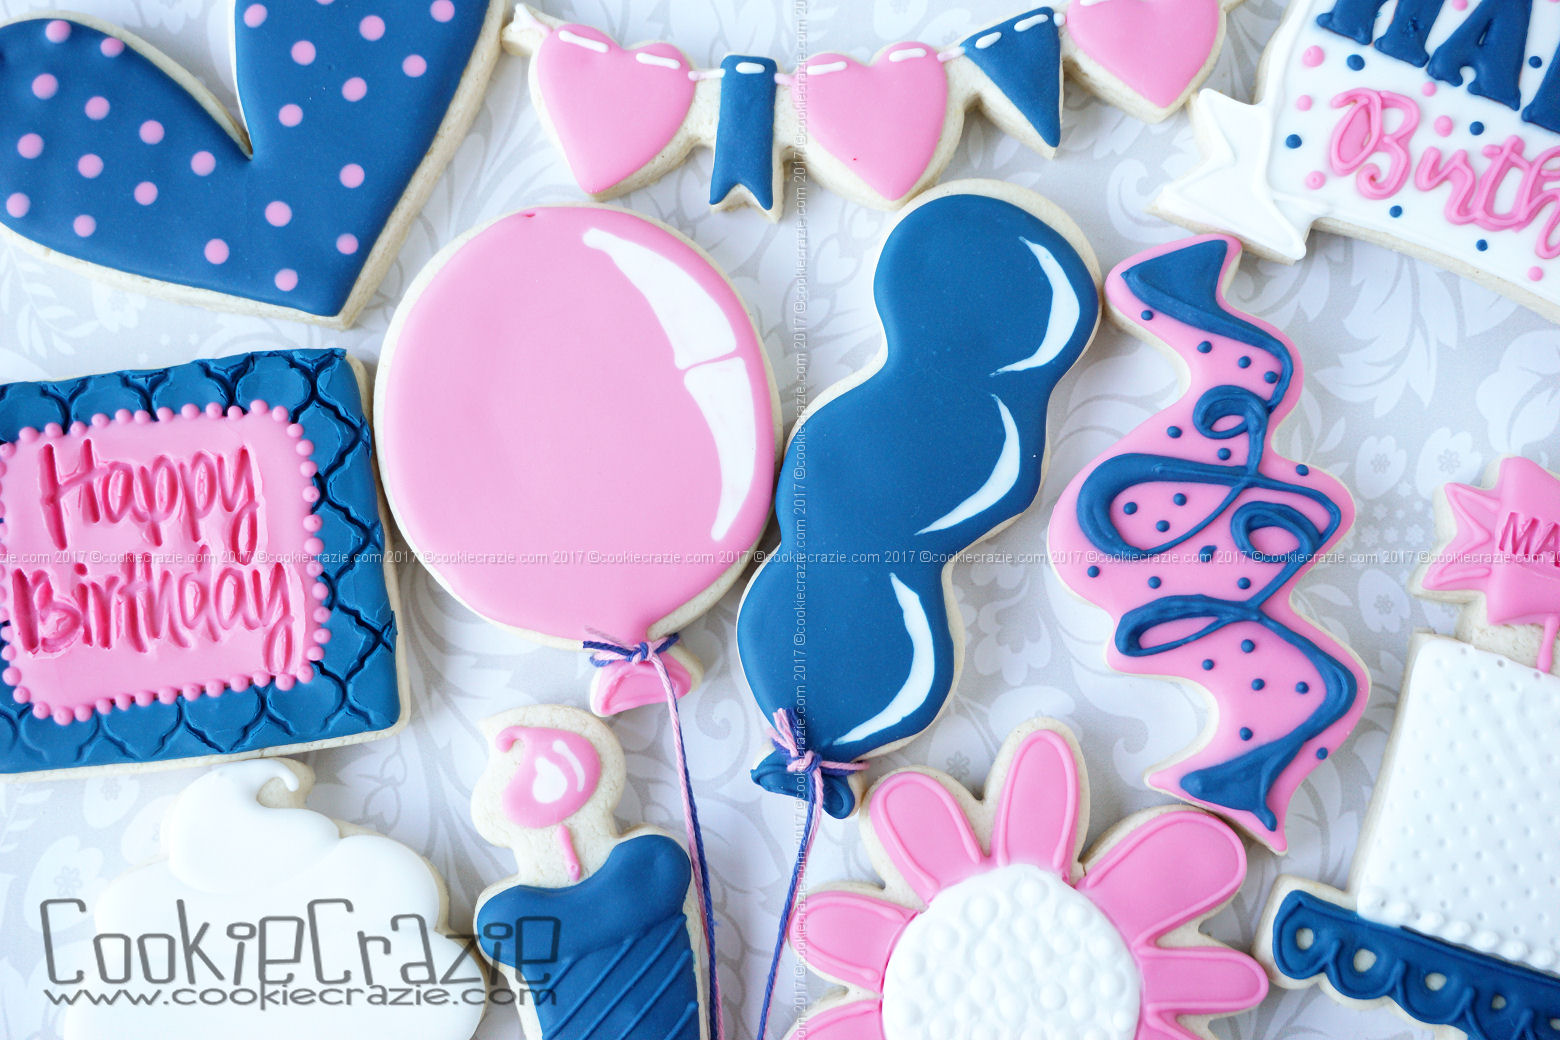 Balloon Decorated Cookie Tutorial Video on YouTube  HERE     Balloon Cutters found  HERE and  HERE